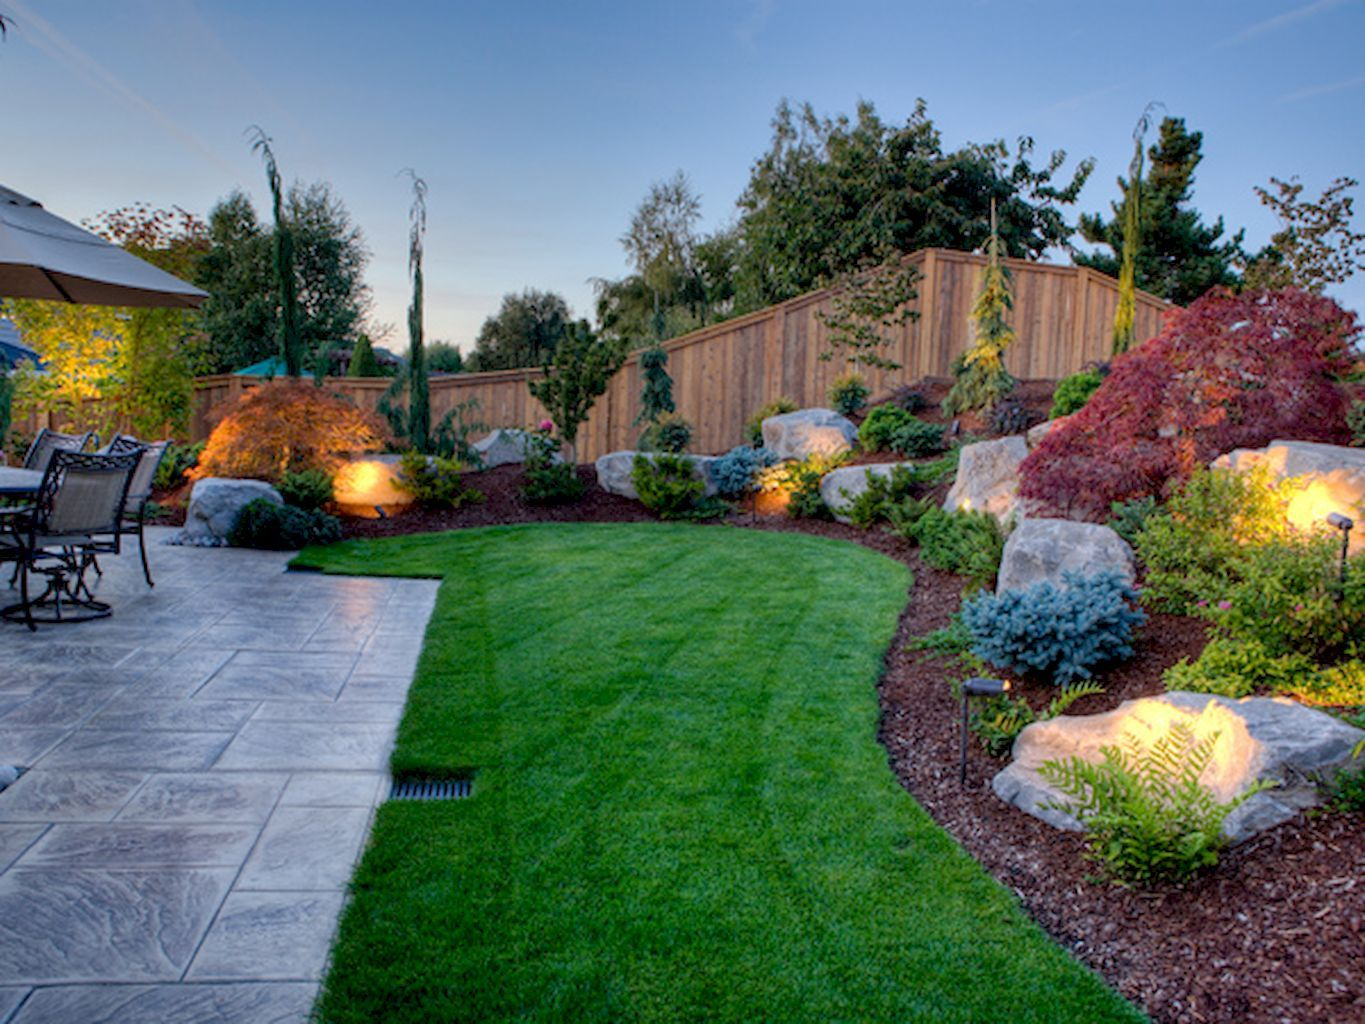 40 beautiful front yard landscaping ideas yard for Outdoor garden ideas for small spaces